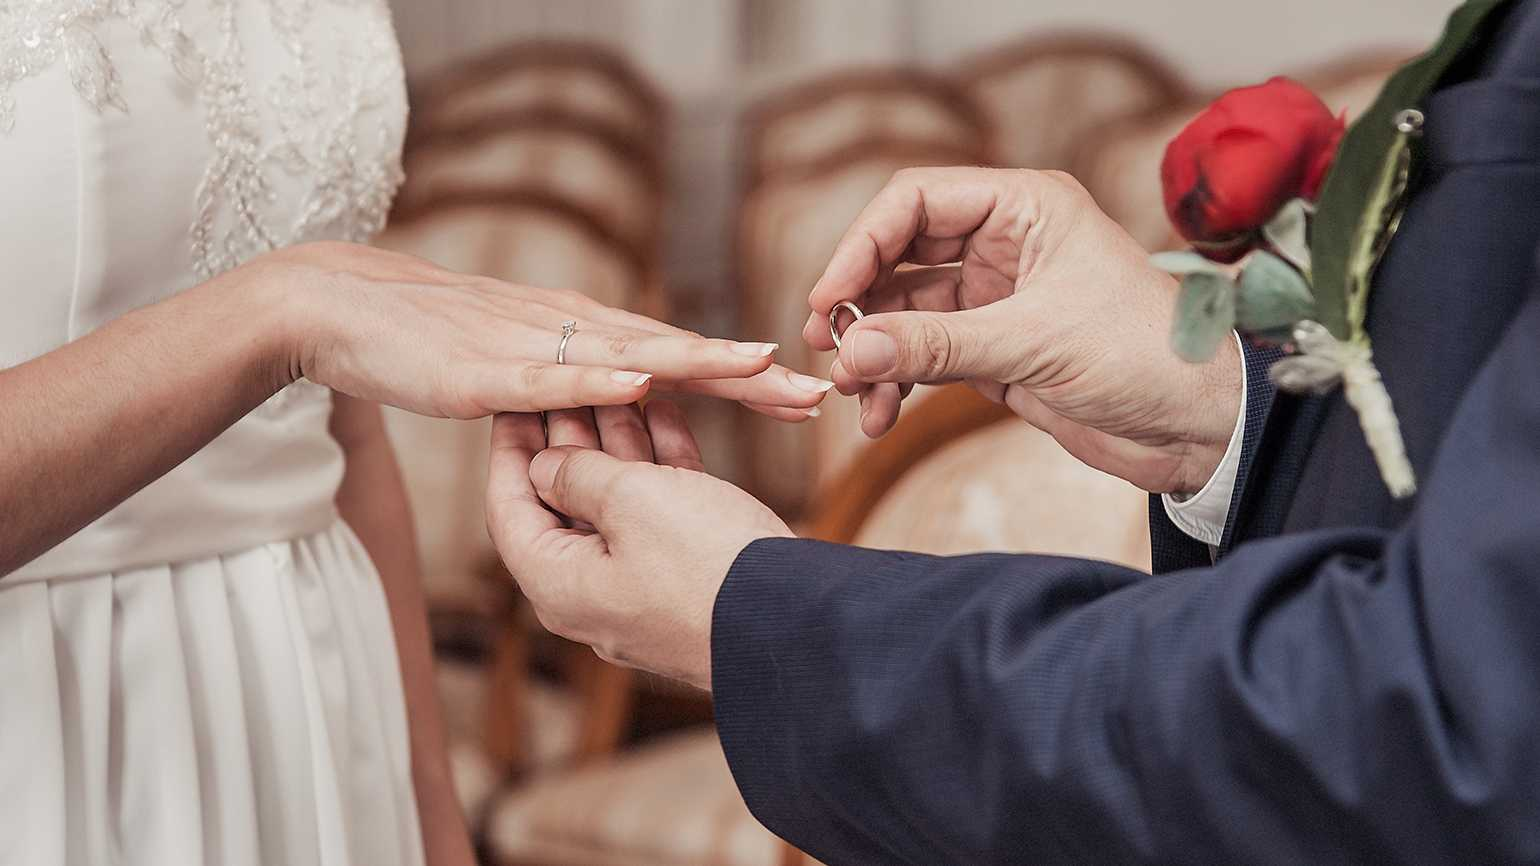 A mature couple exchanges rings during their wedding ceremony